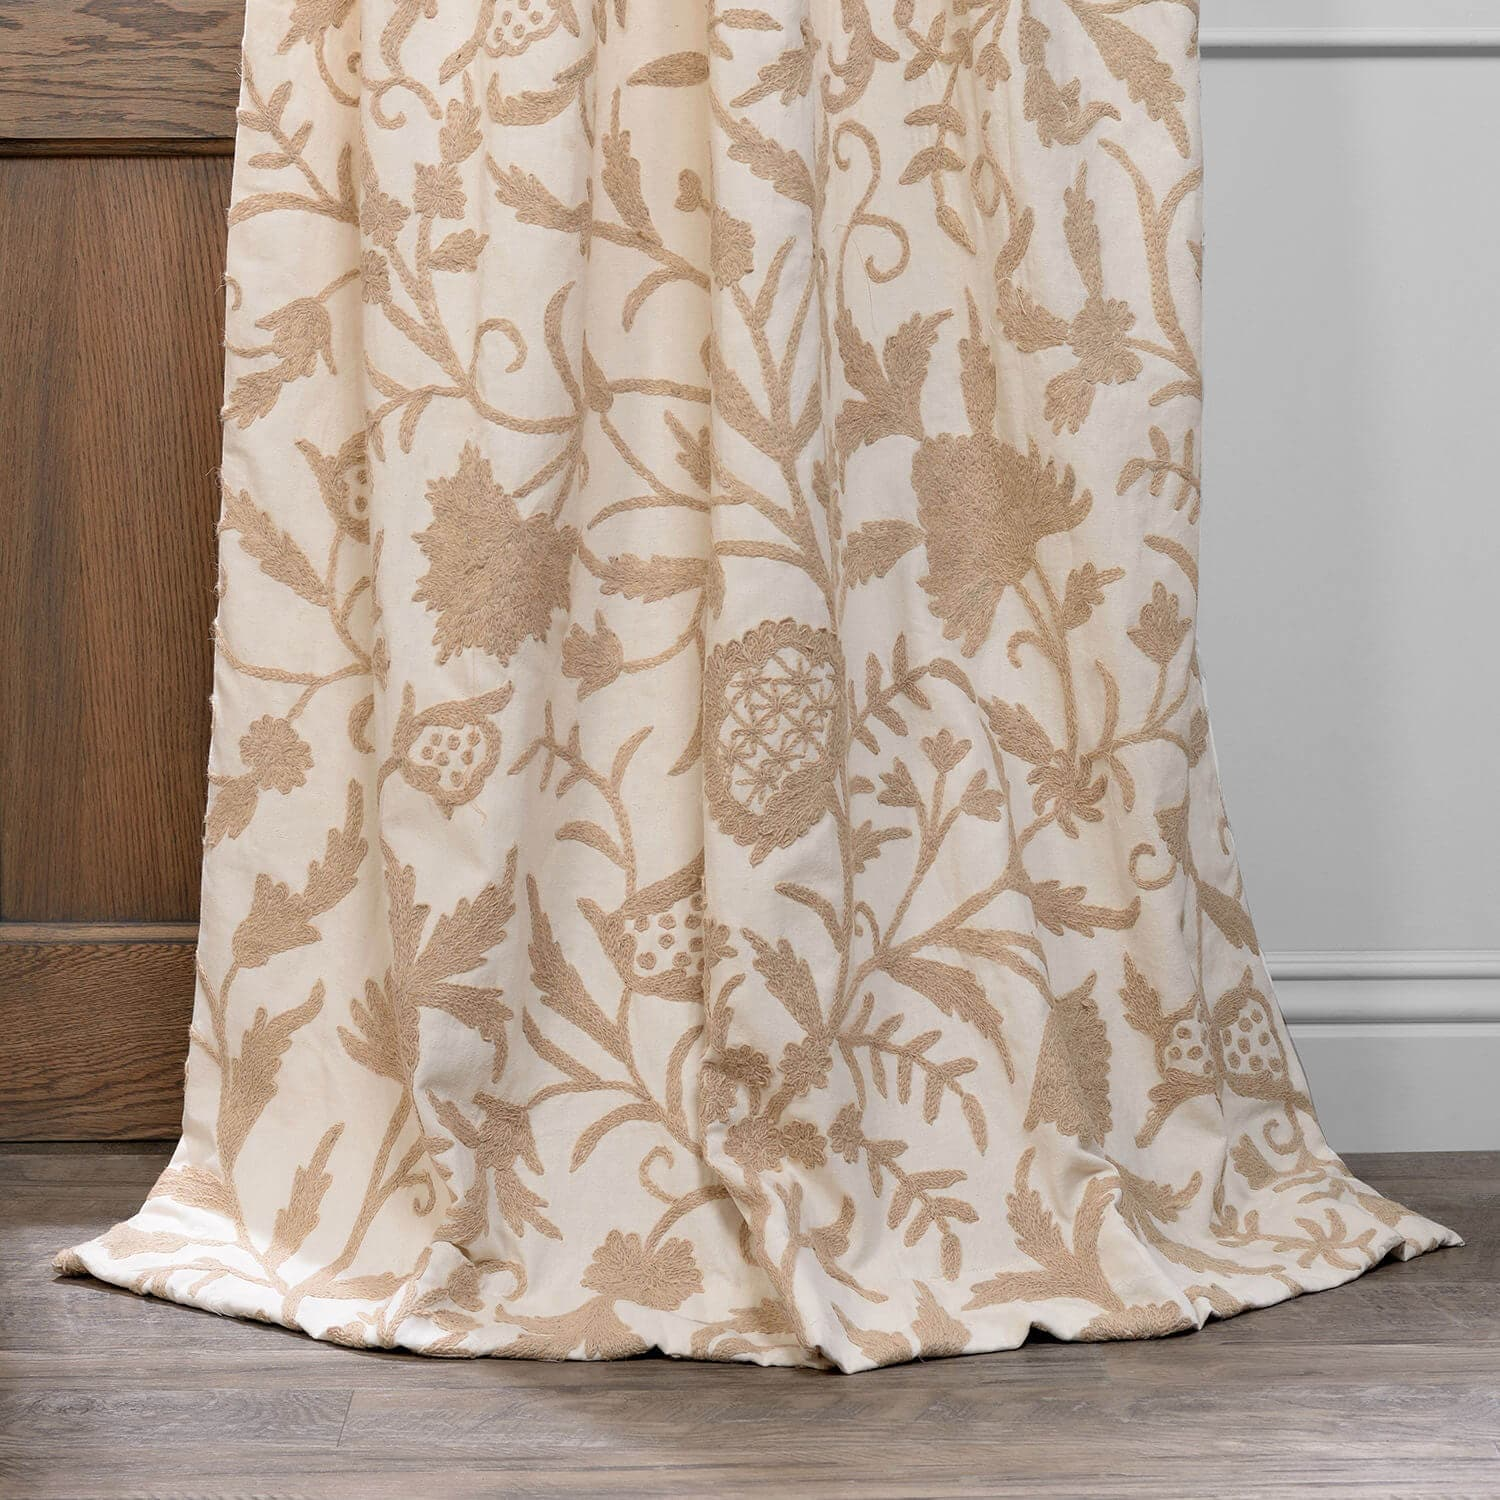 Celine Cream Embroidered Cotton Crewel Curtain